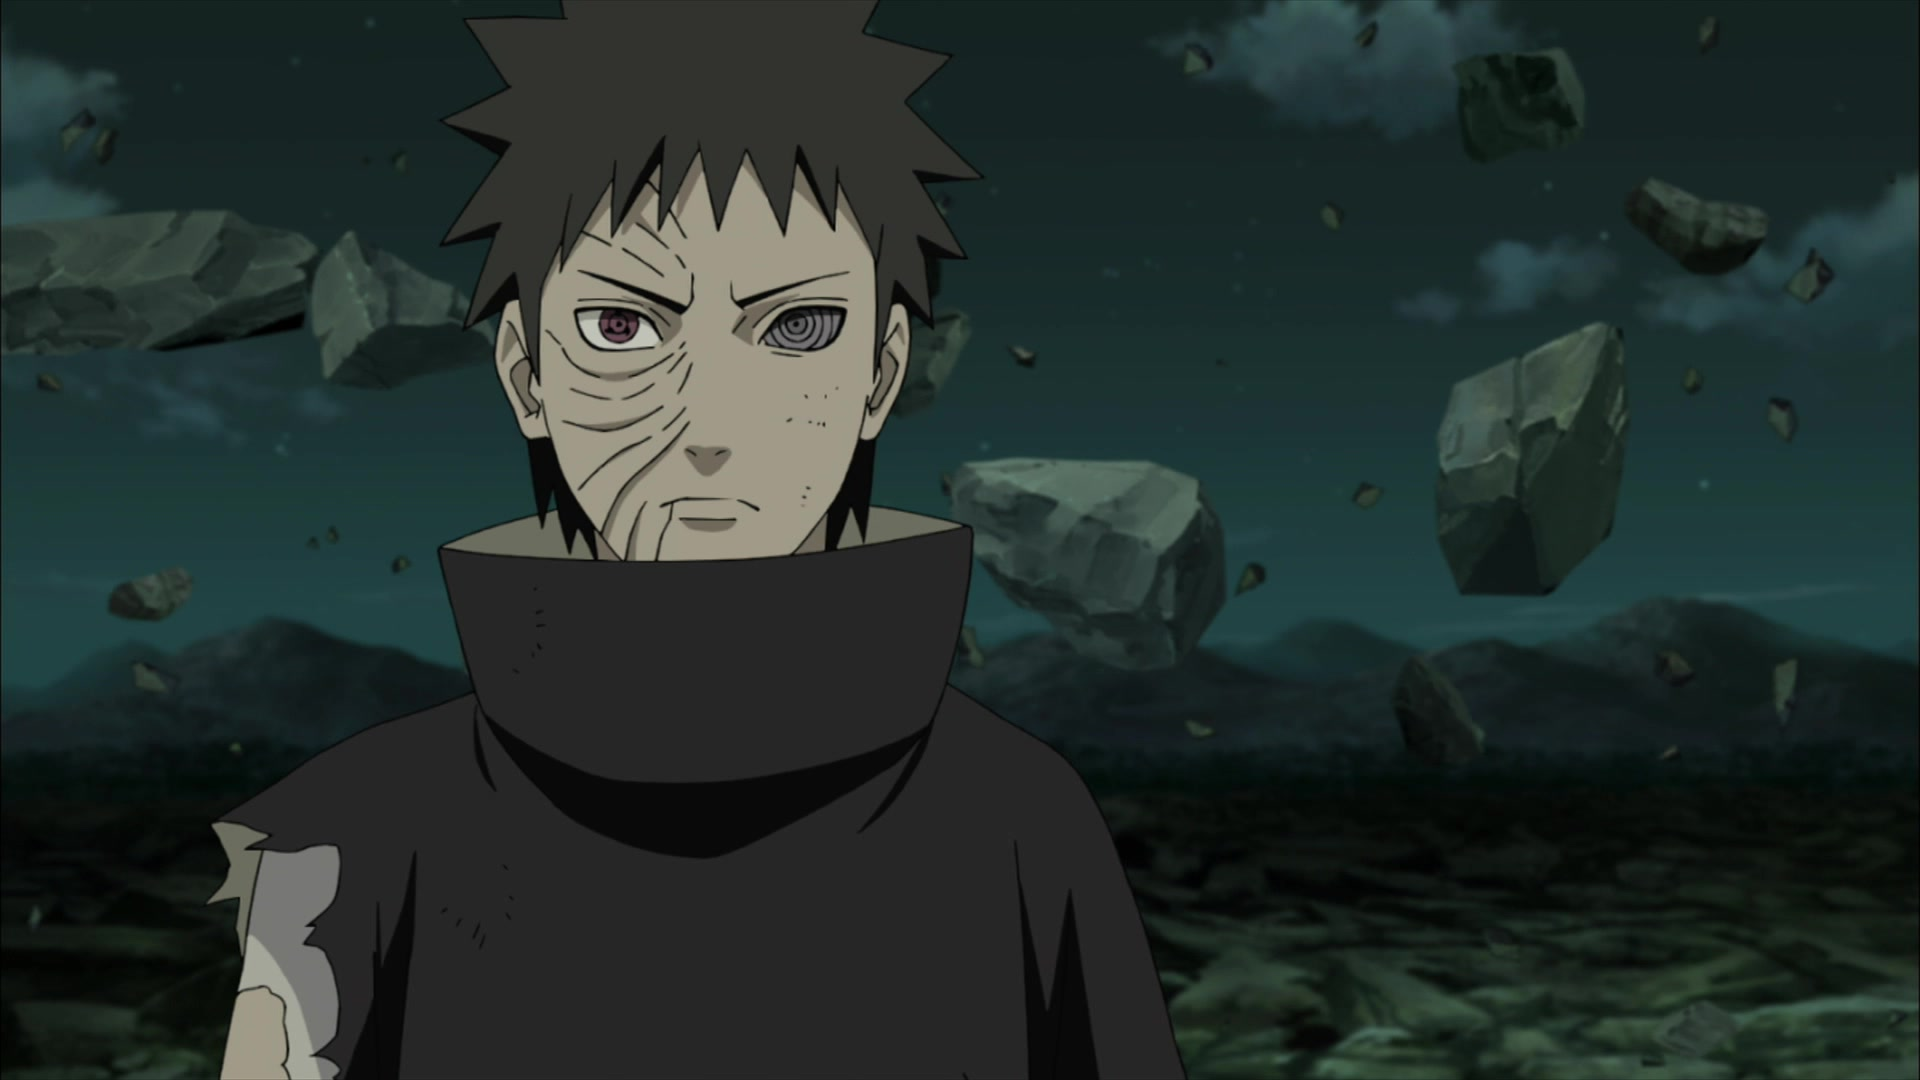 Naruto Shippuden: Season 17 Episode 344, Obito and Madara, - Watch